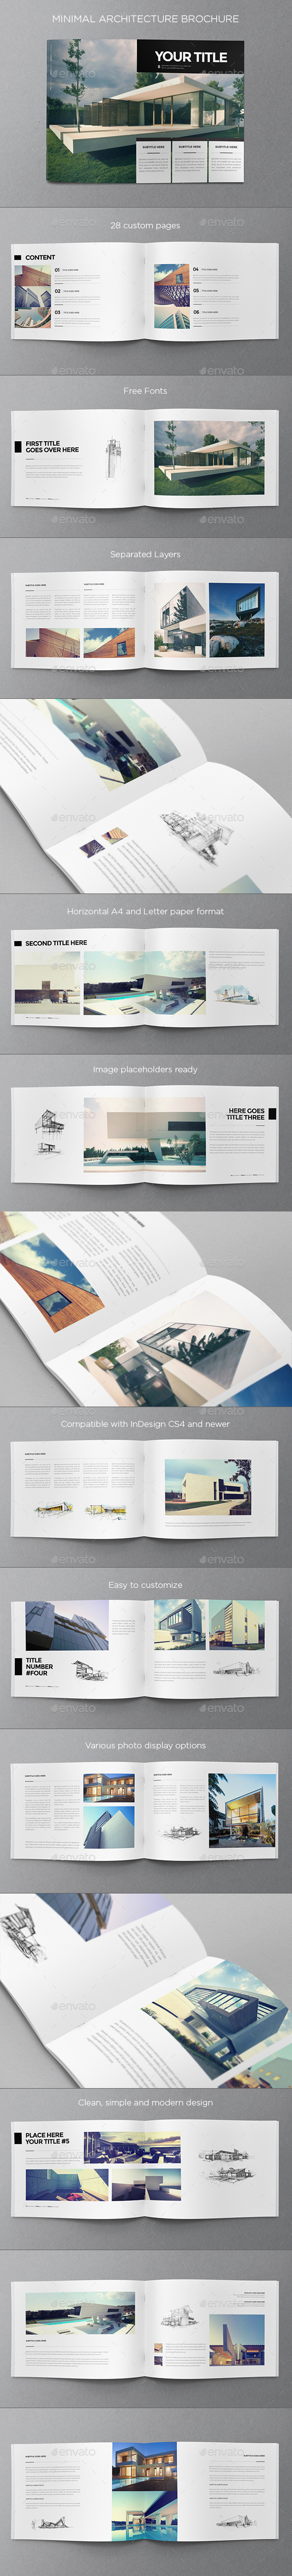 Minimal Architecture Brochure - Brochures Print Templates